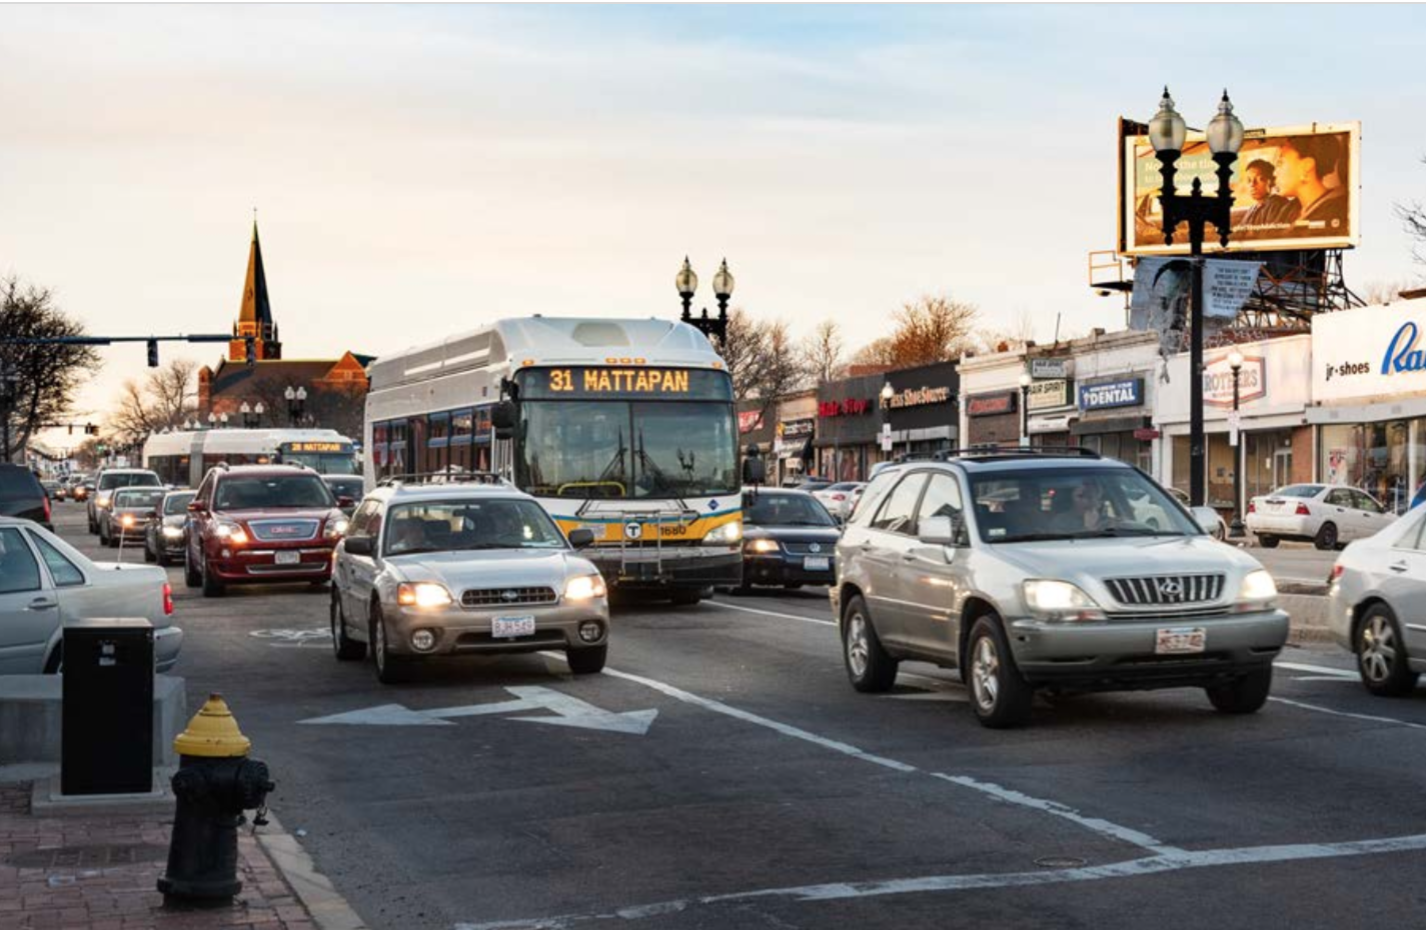 A bus drives in traffic in Mattapan